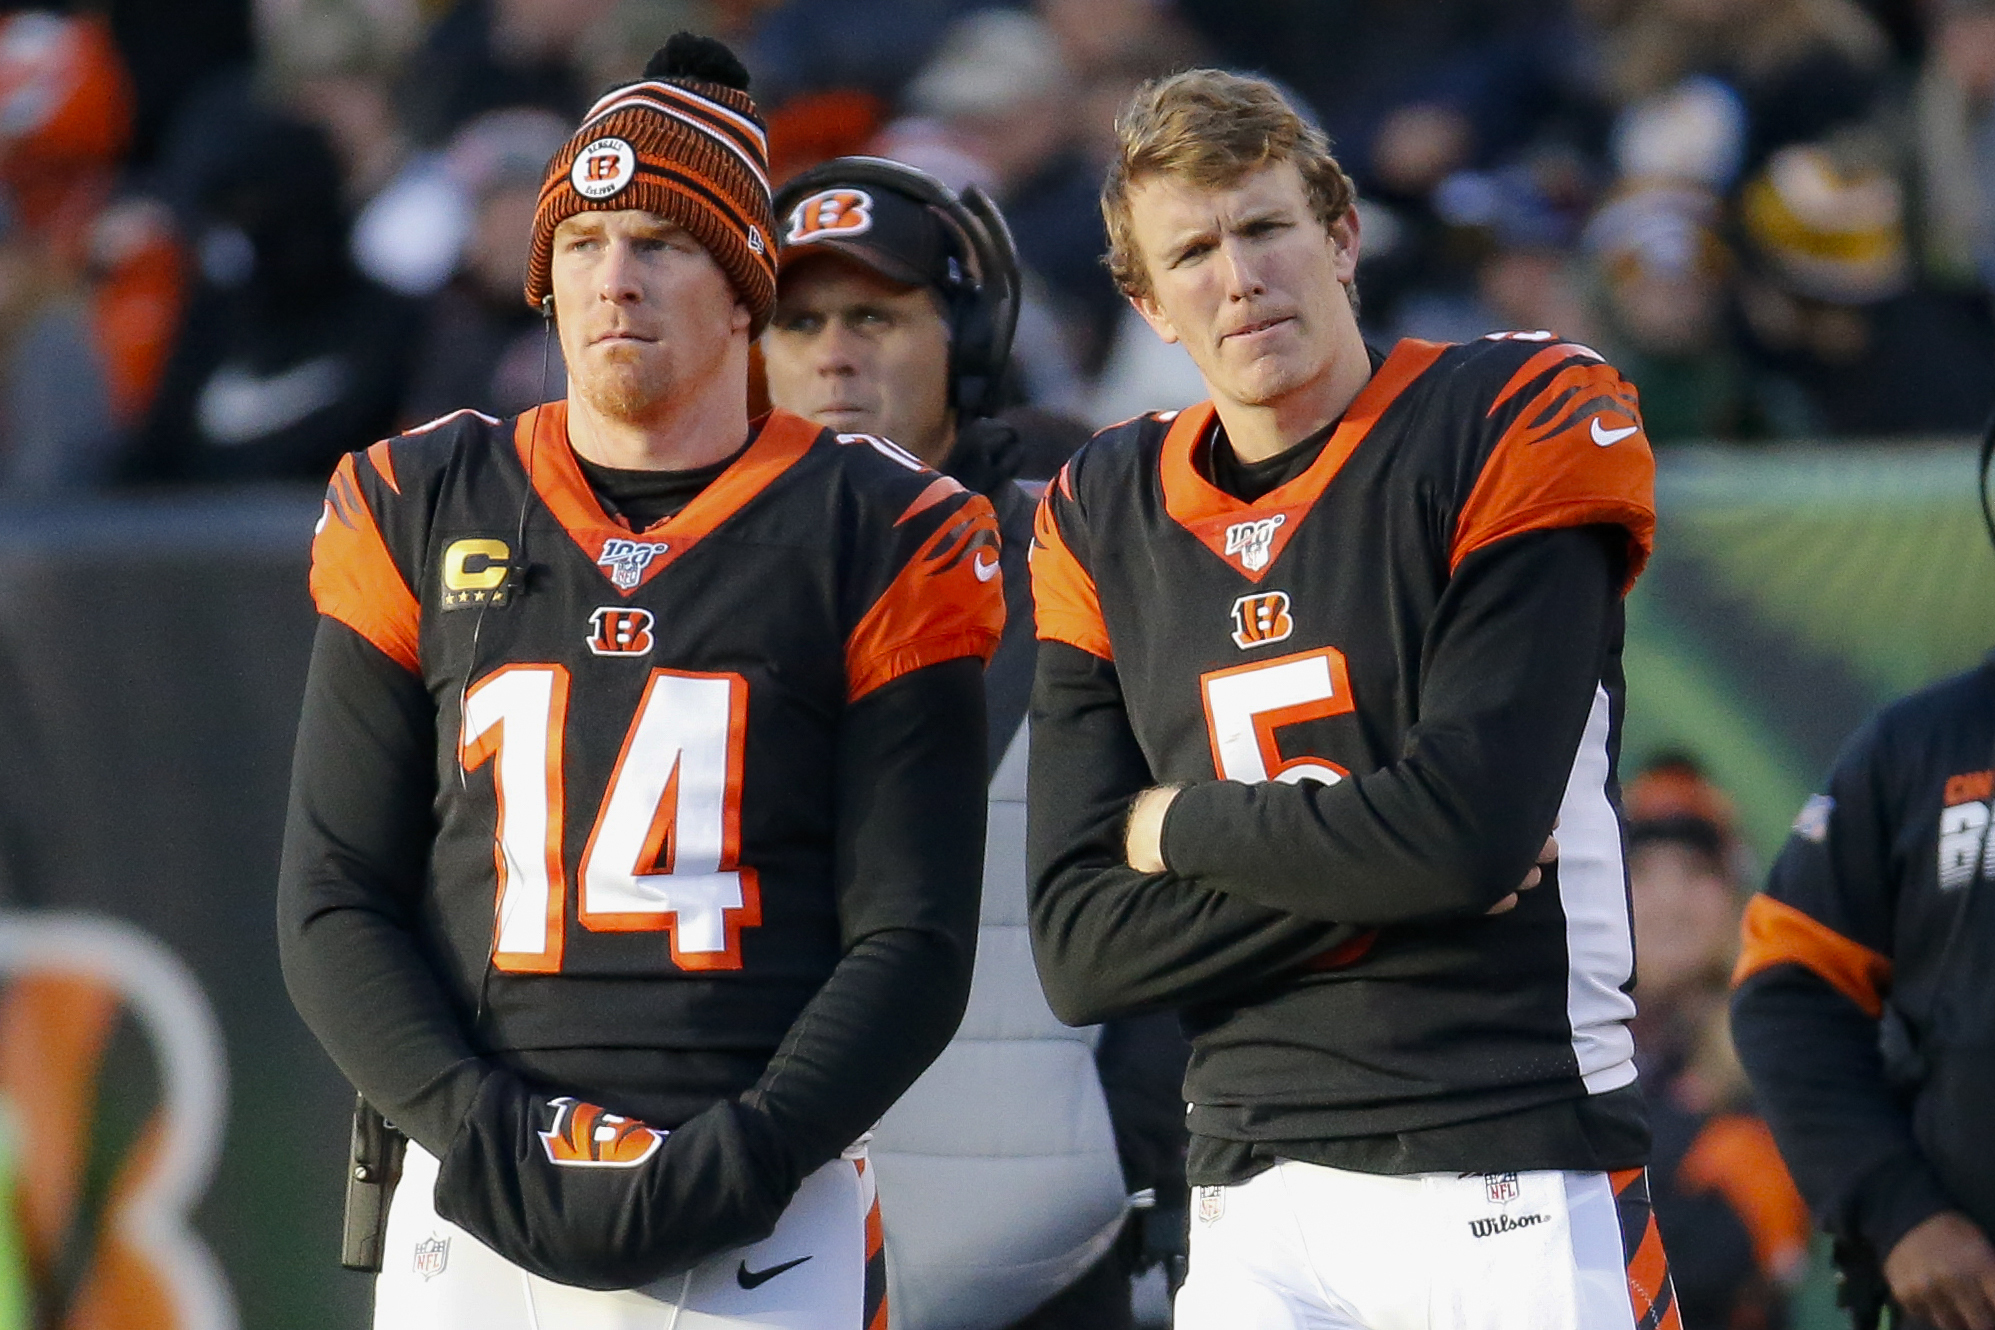 Winless Bengals bench rookie Finley, go back to Andy Dalton